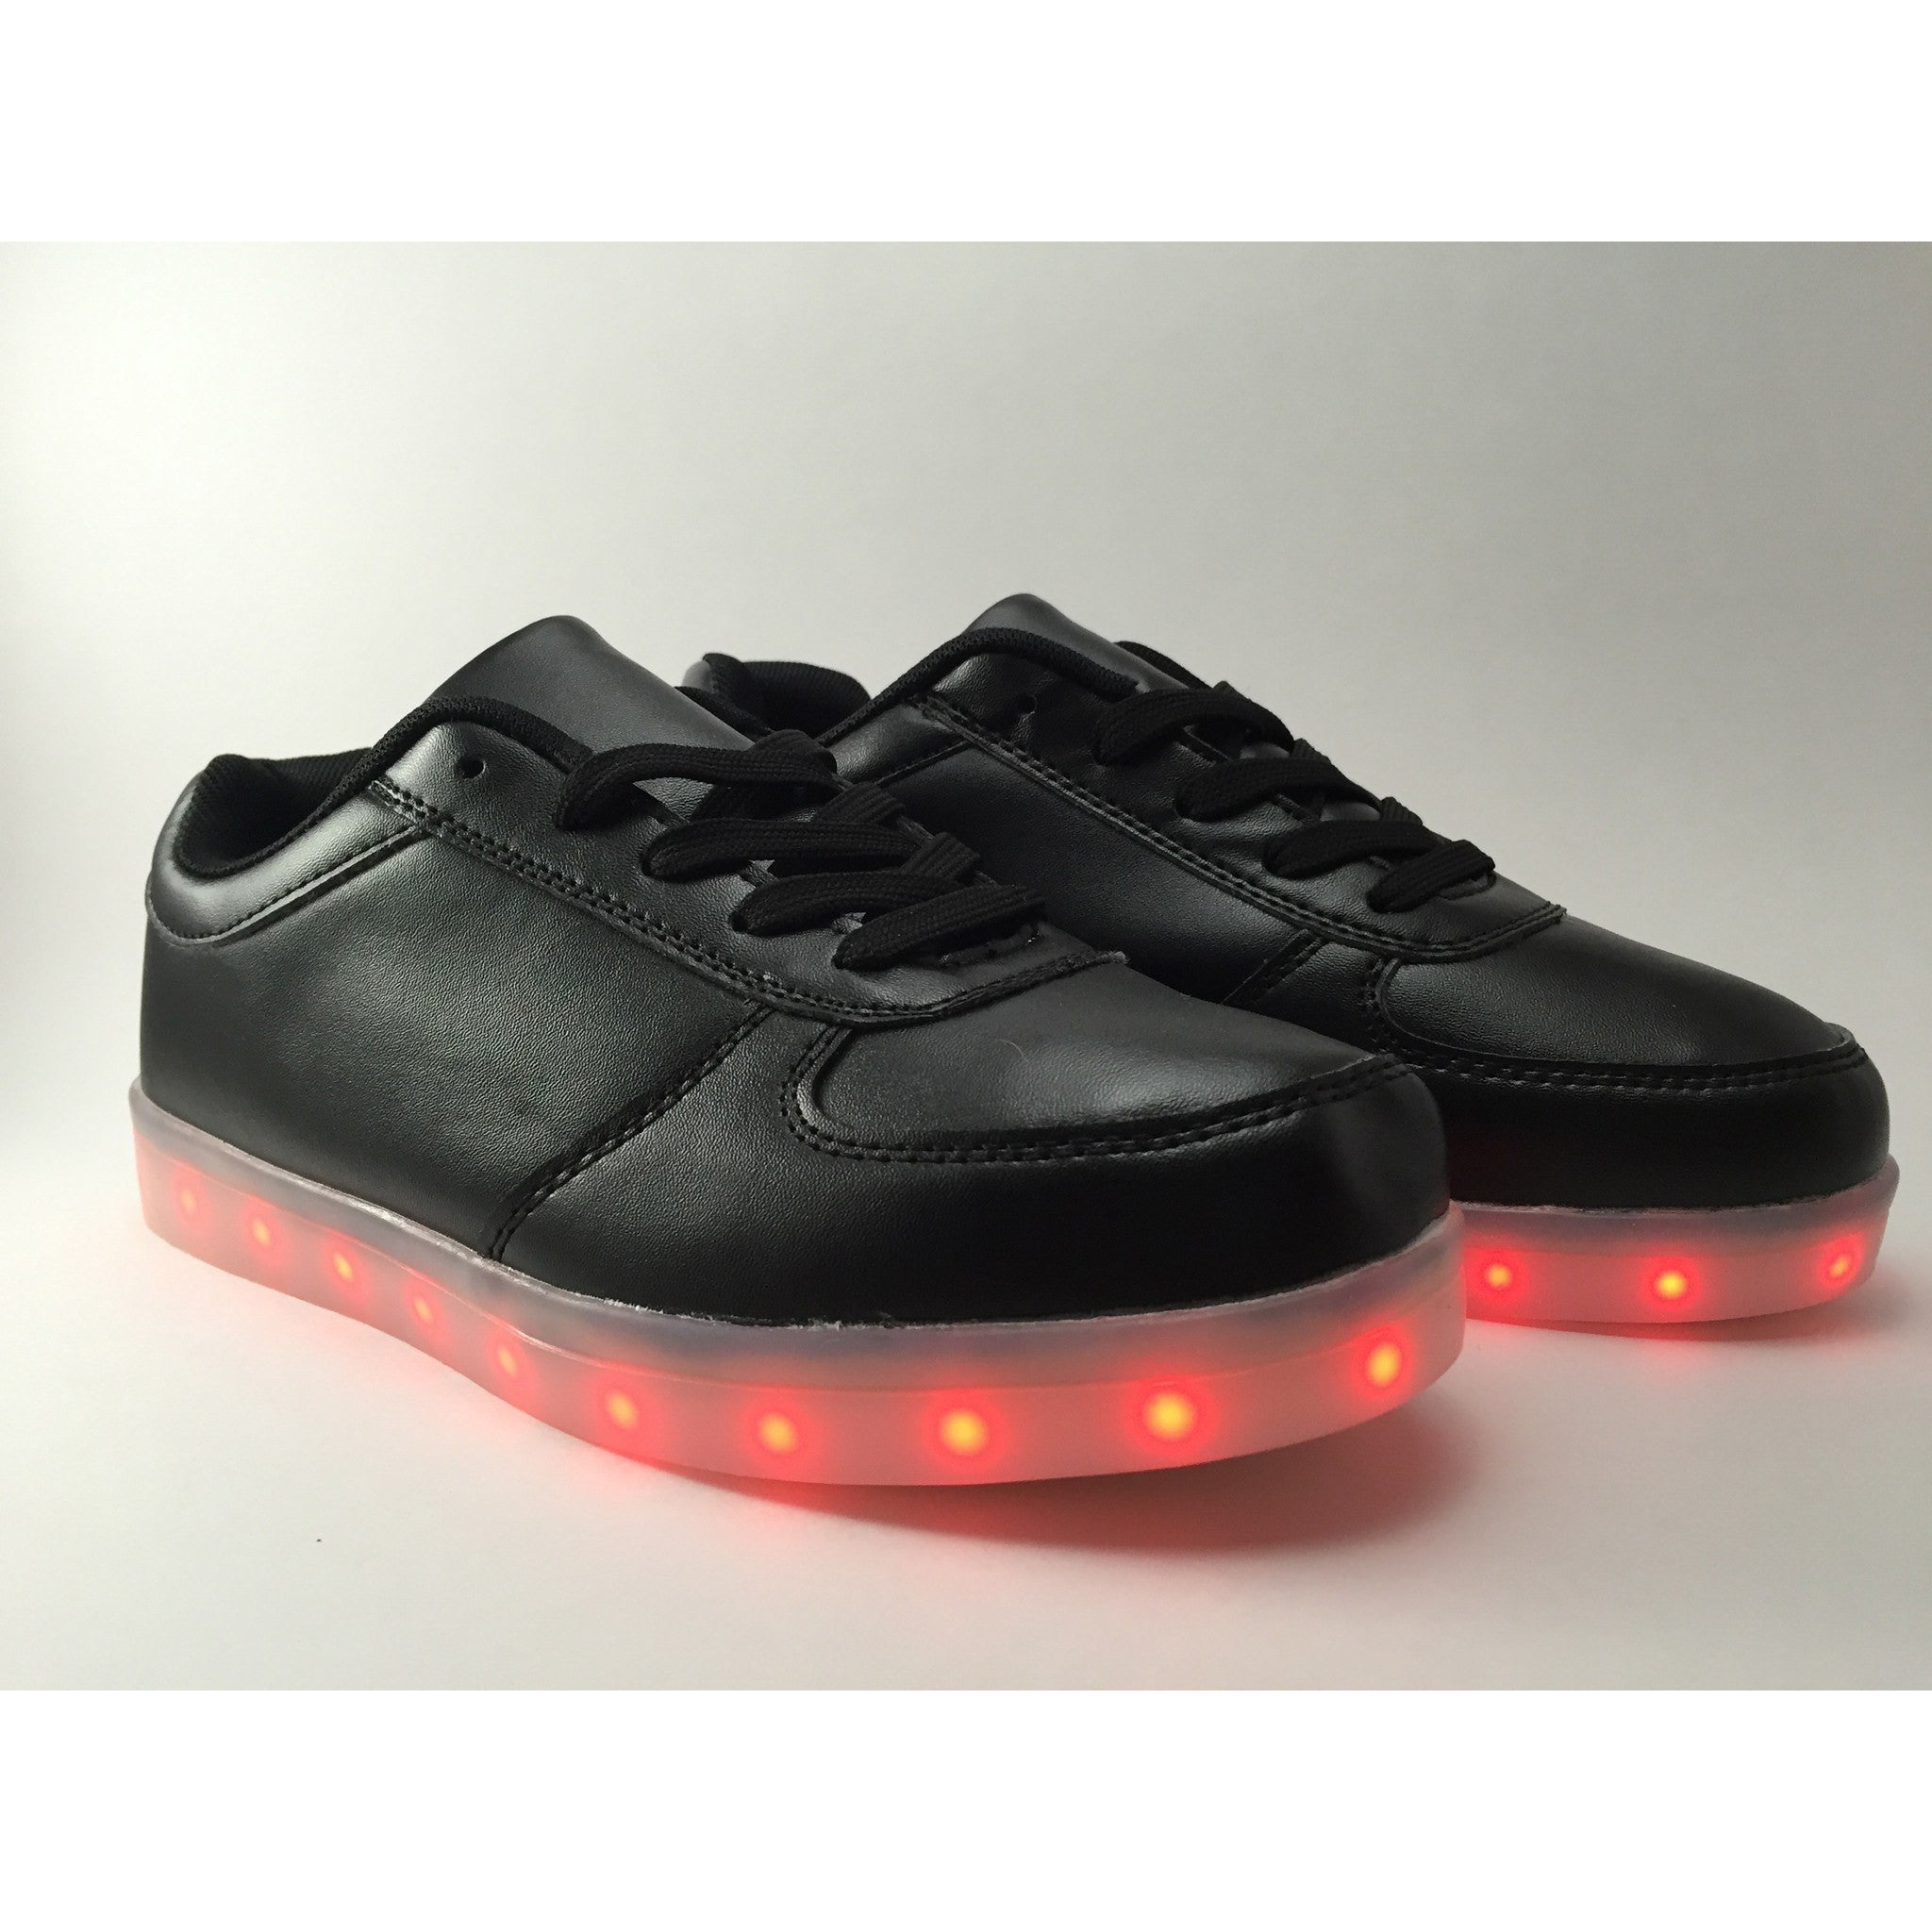 Black LED Light Up Shoe - Rave Rebel